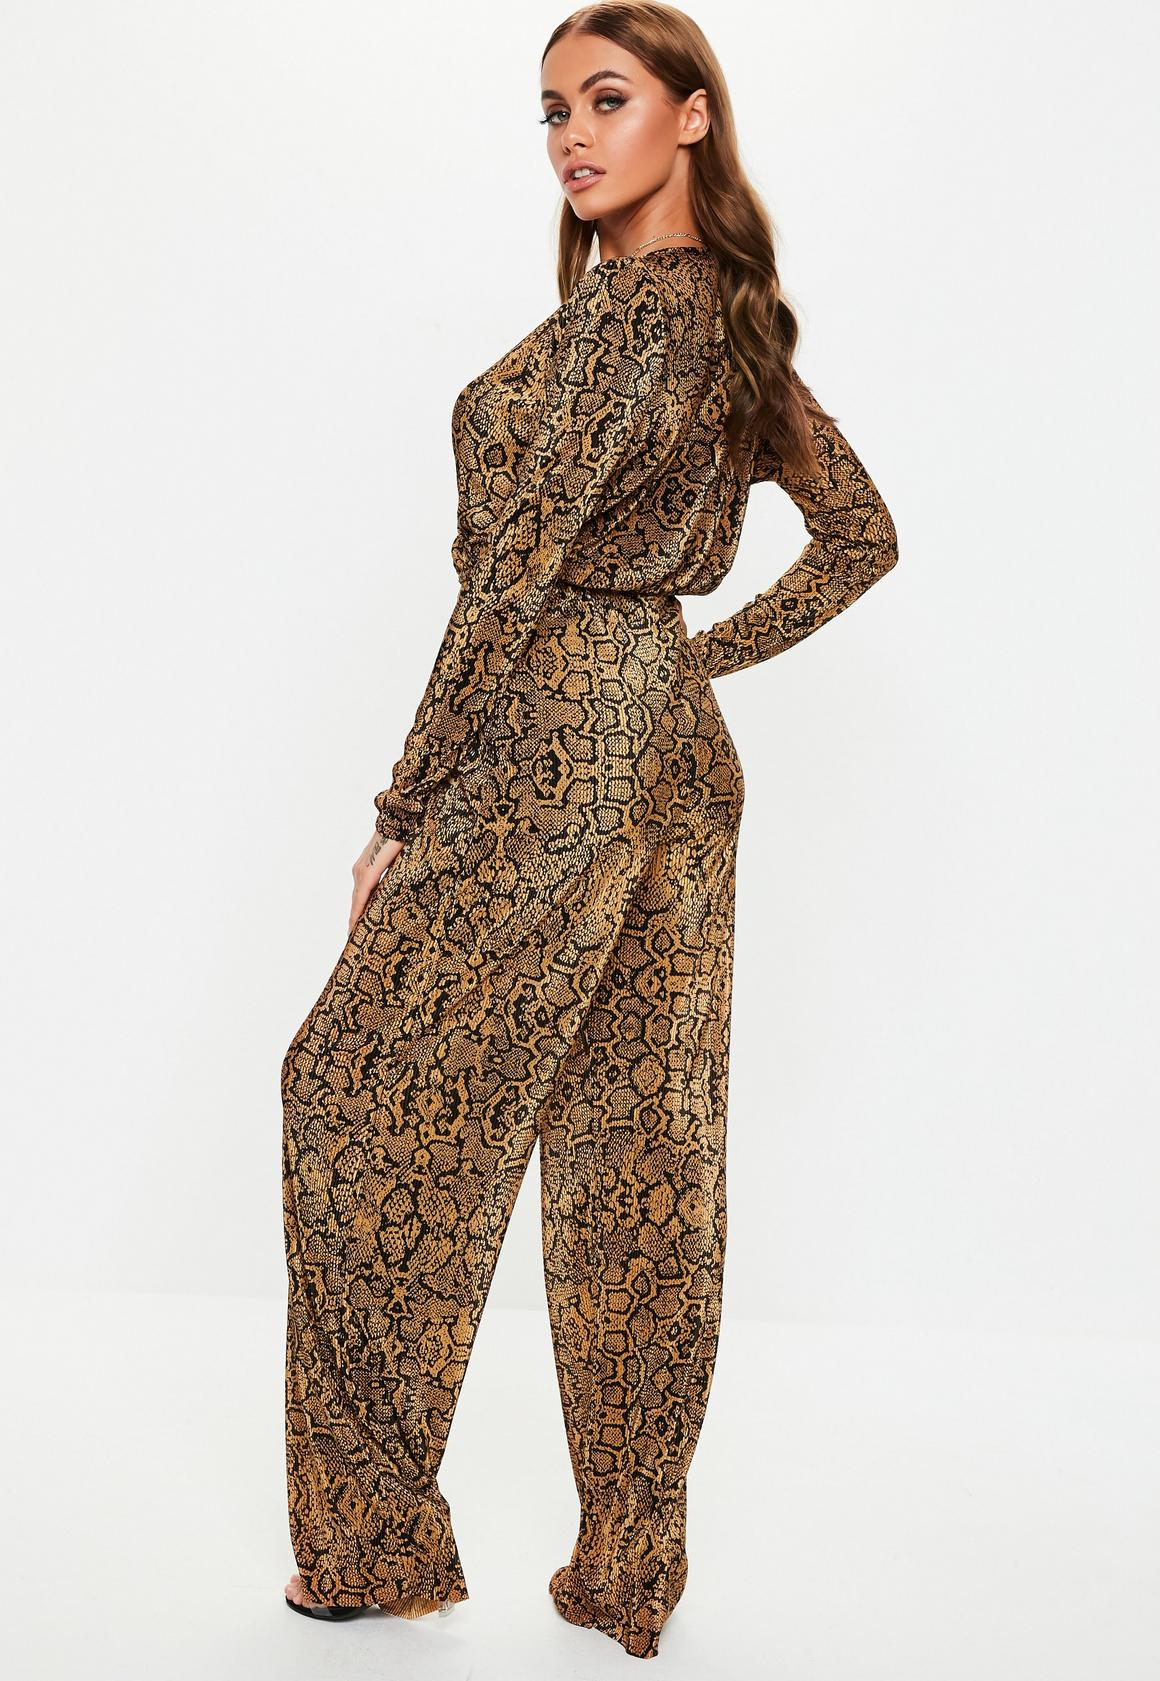 Missguided - pantalon large plissé marron imprimé serpent - 3